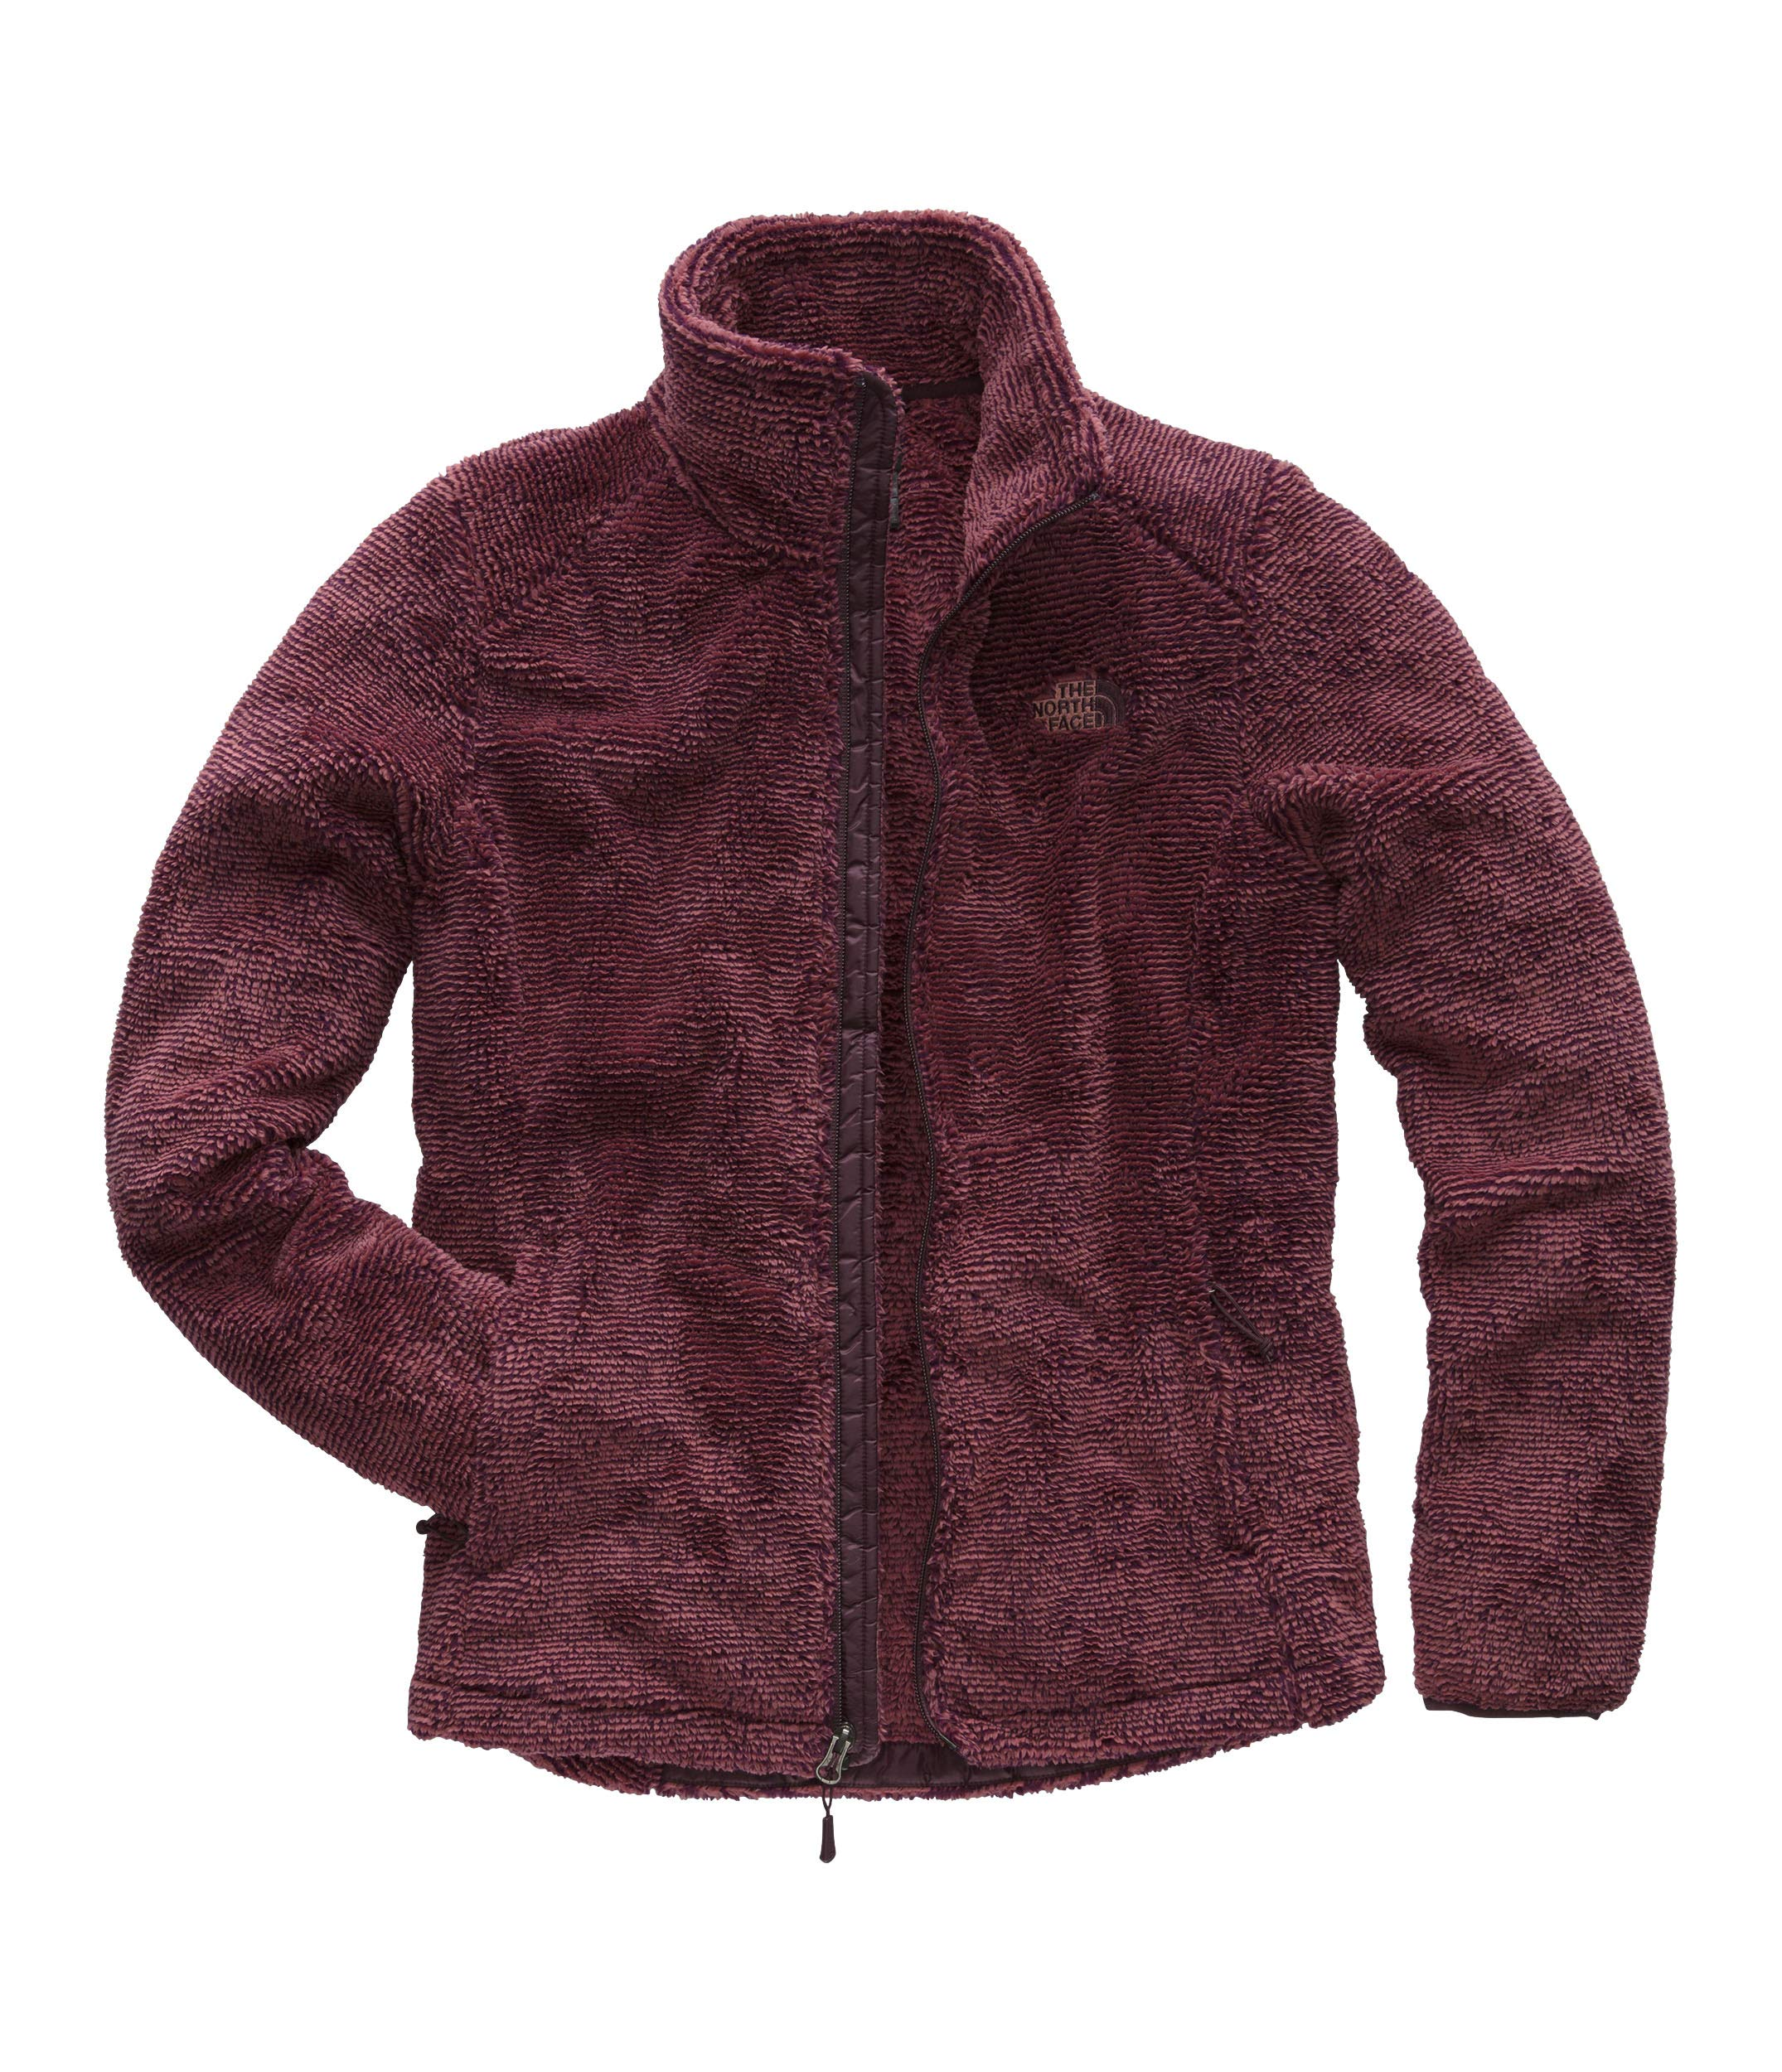 743a08c1cfe The North Face Women s Osito 2 Jacket product image